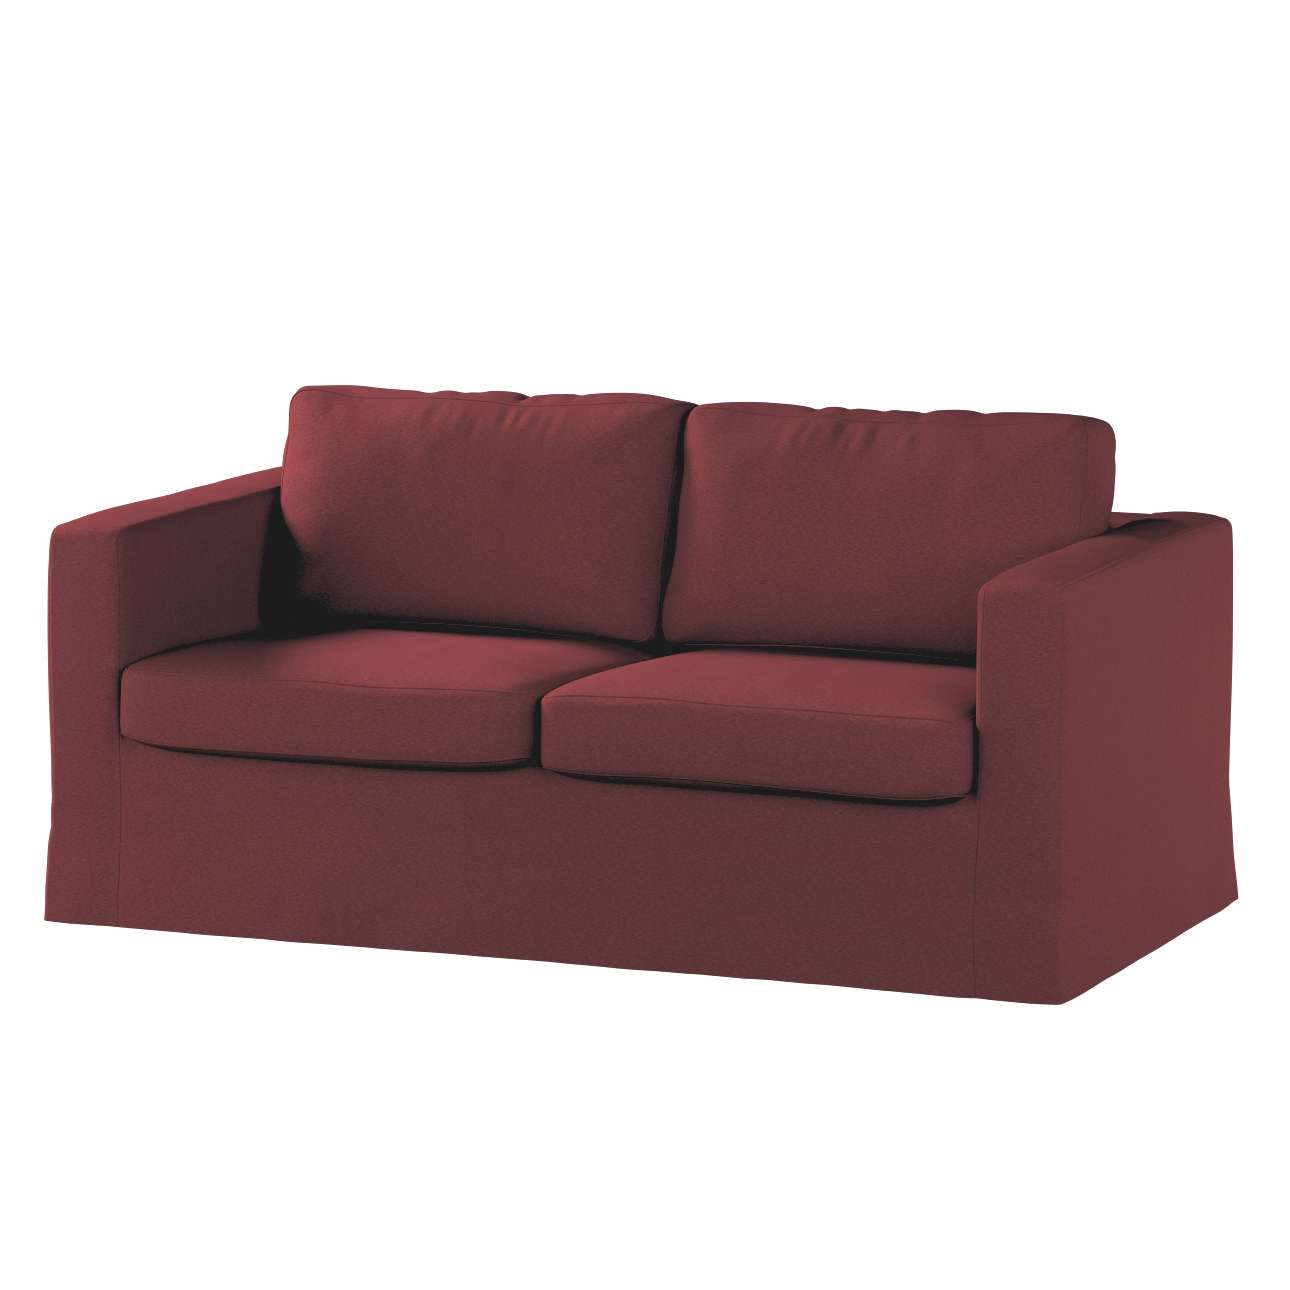 Floor length Karlstad 2-seater sofa cover in collection Living, fabric: 100-99